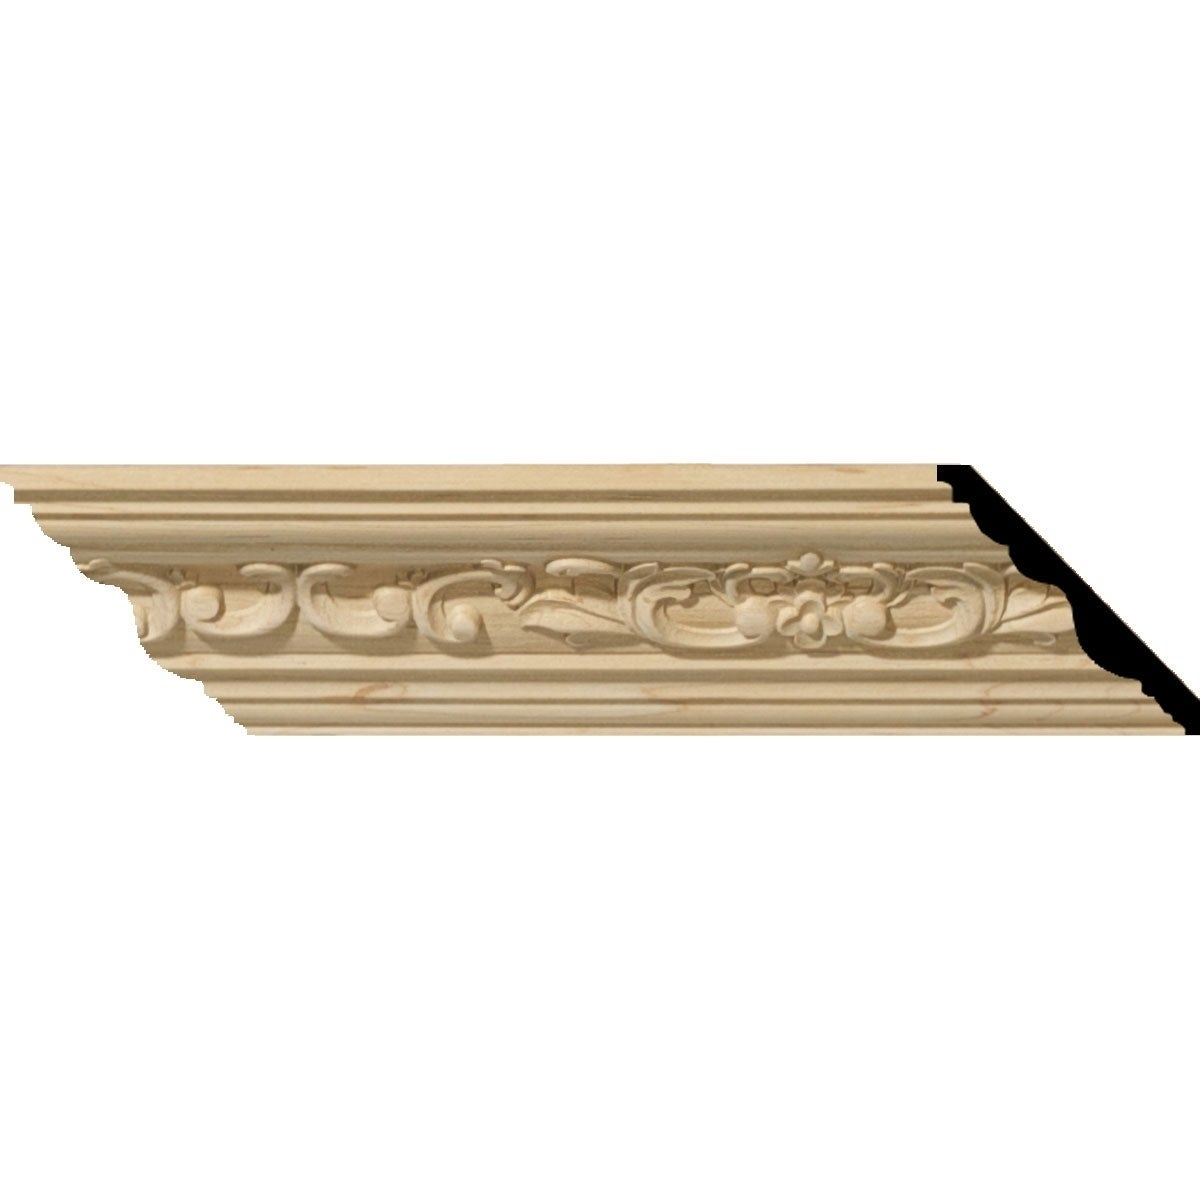 3 1/2H x 3 5/8P x 5F x 94 1/2L Medway Wood Crown Moulding (Cherry - 1-Pack)